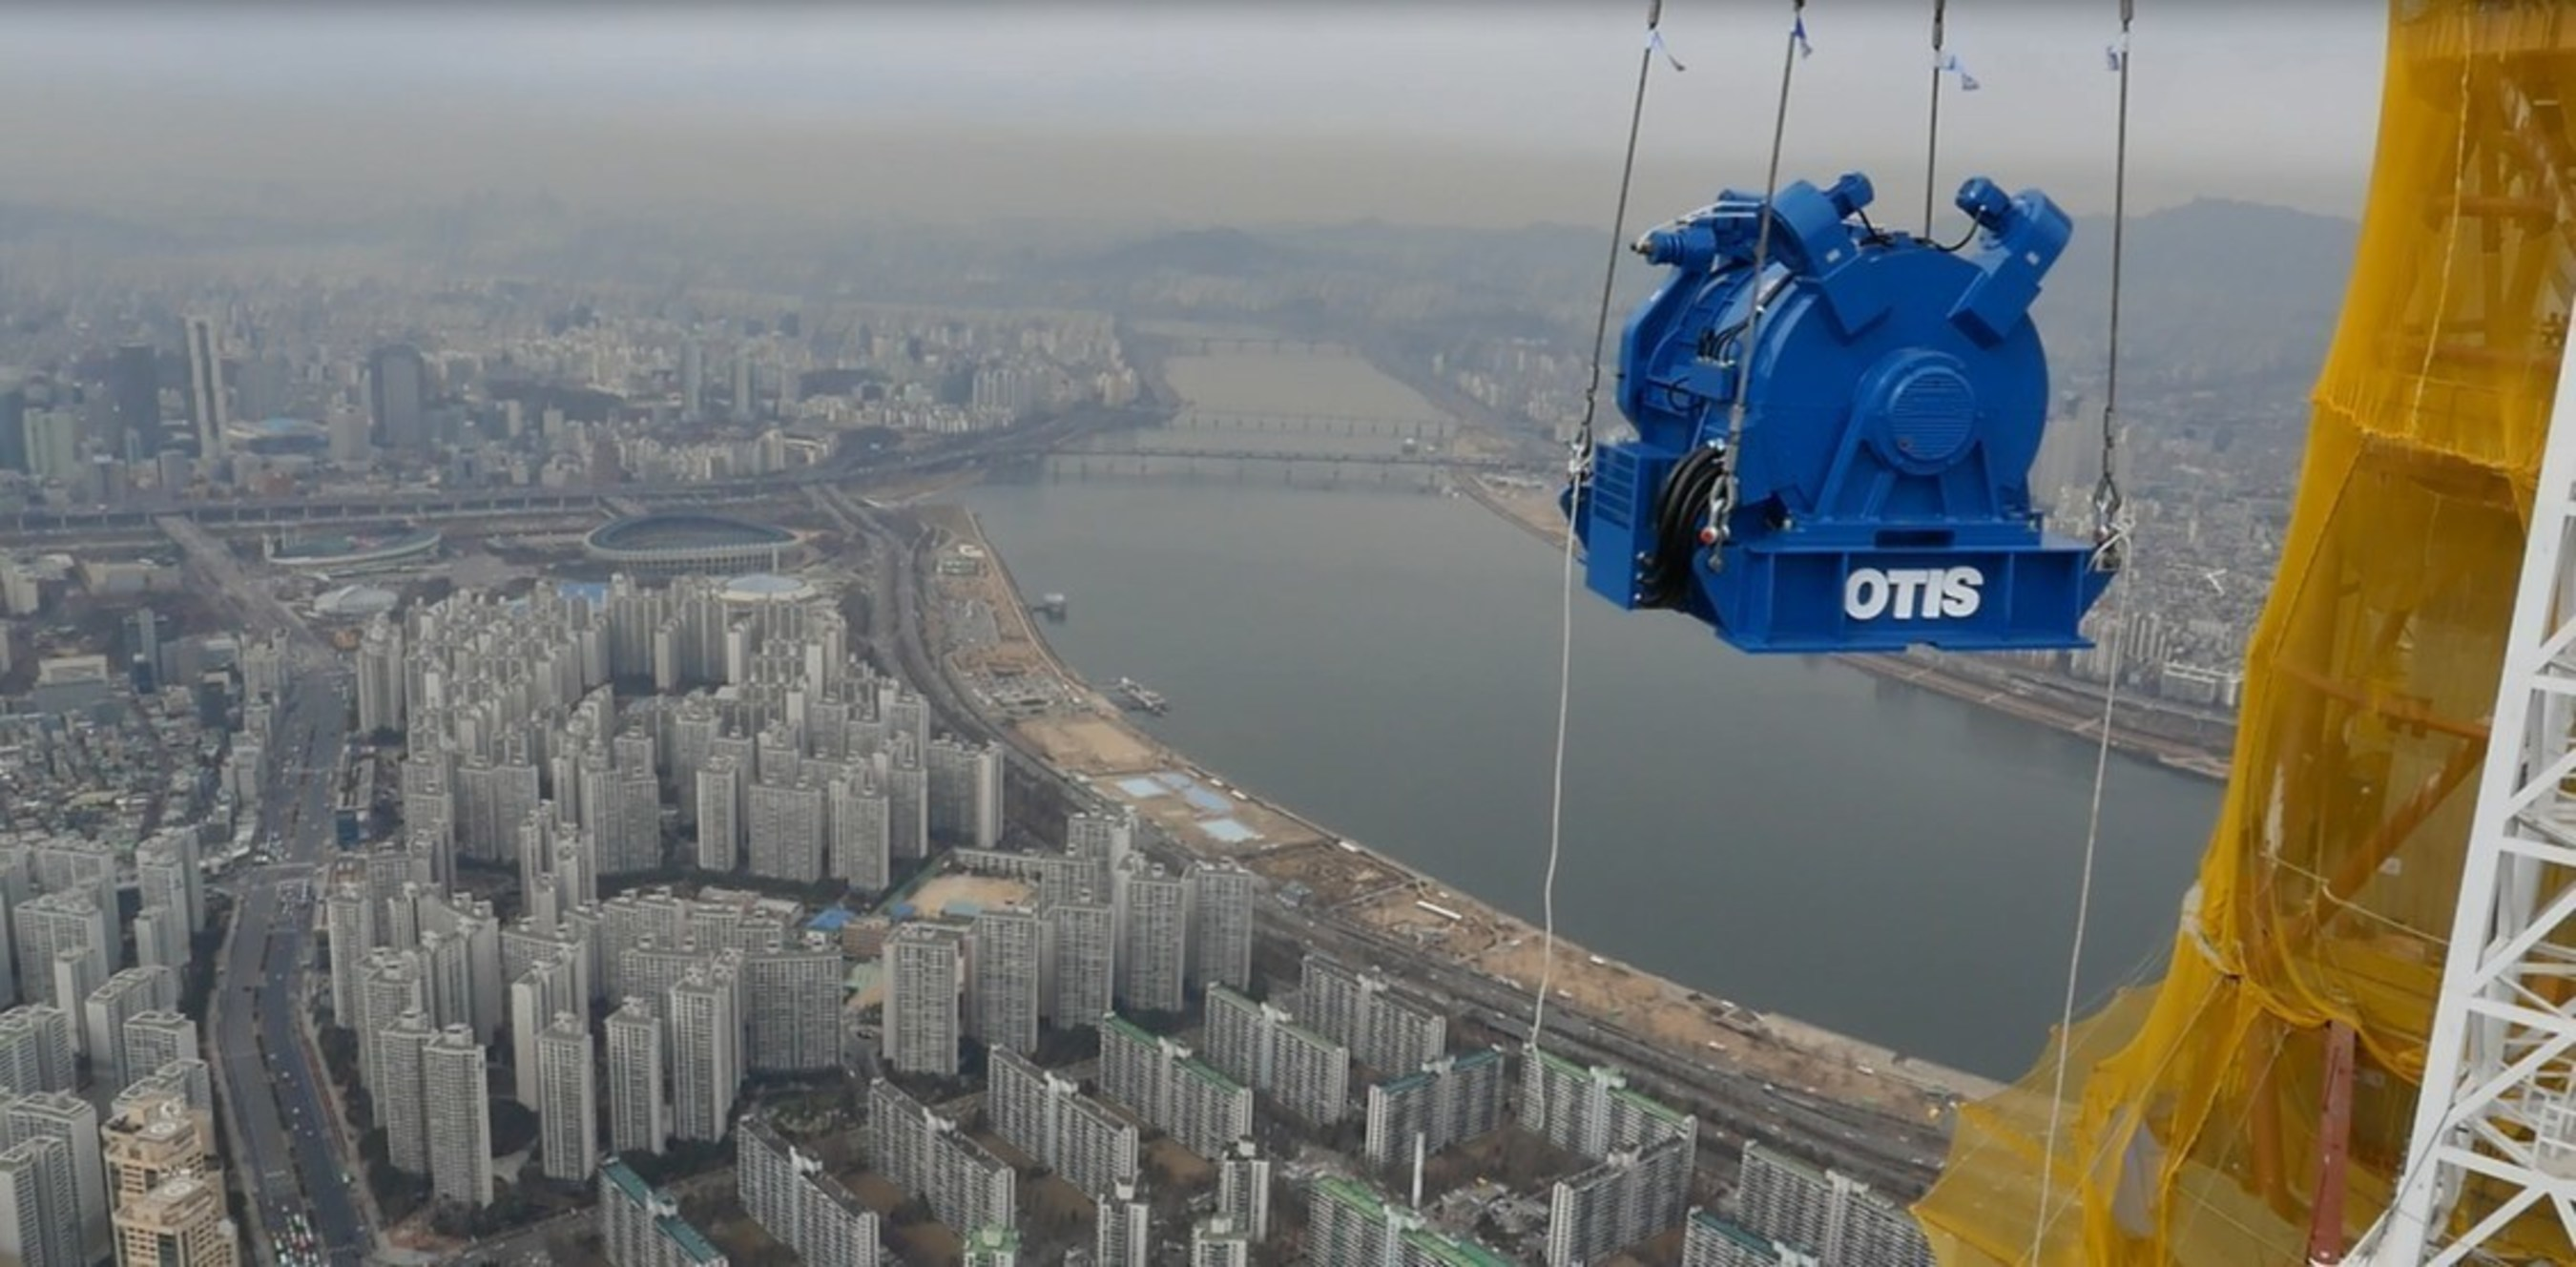 Otis Elevator installed the 100-ton traction machine in the Lotte World Tower in Seoul, South Korea on Feb. 22. The machine powers the world's longest double-deck elevator, which runs 496  meters and can carry 54 passengers to the building observation deck in less than one minute.